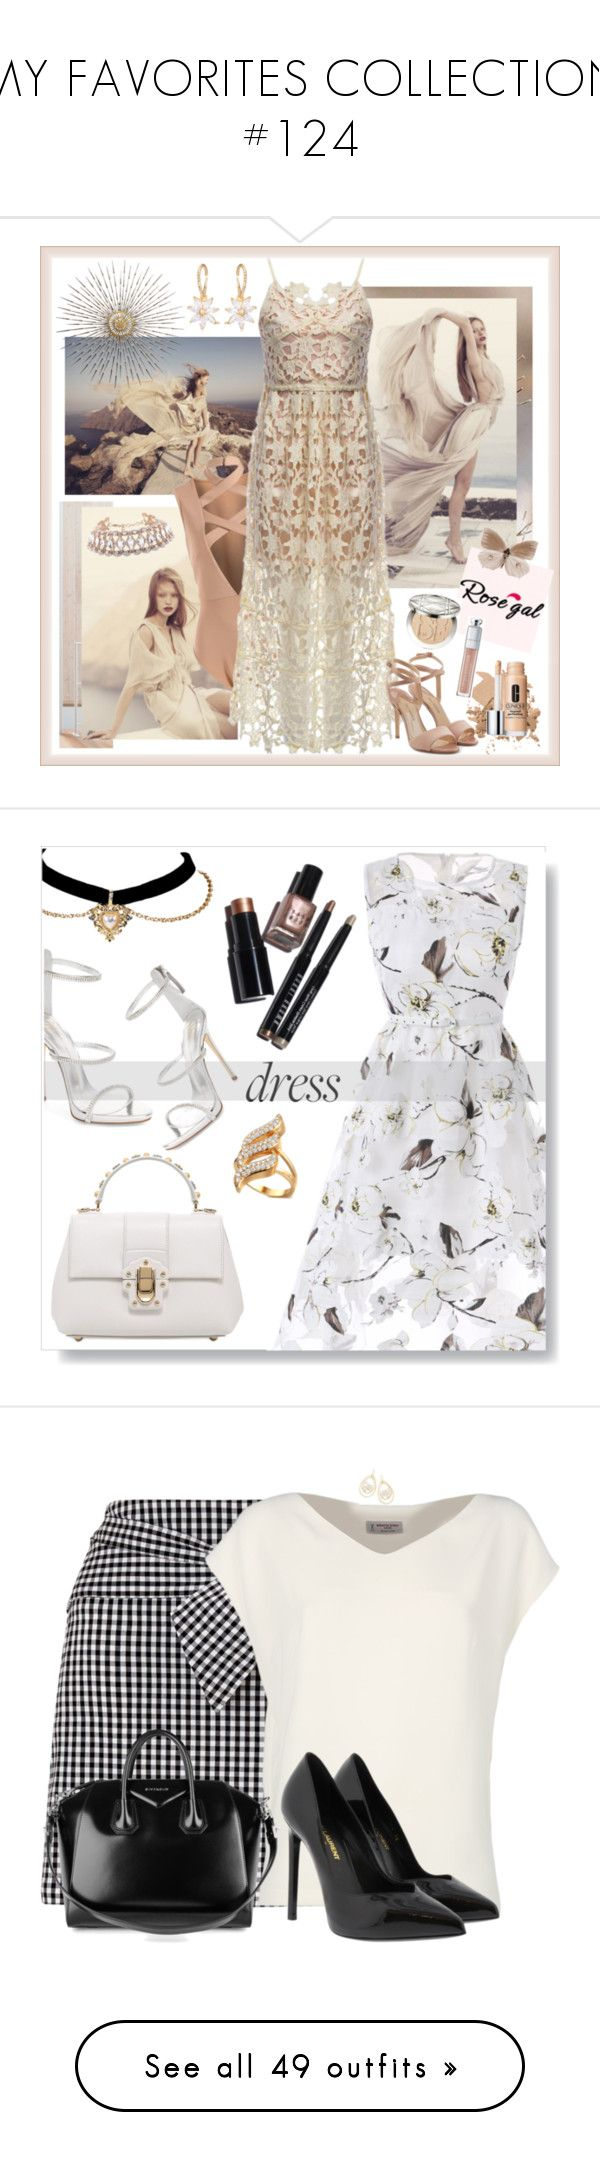 """""""MY FAVORITES COLLECTION #124"""" by lwilkinson ❤ liked on Polyvore featuring Paul Andrew, Christian Dior, Bobbi Brown Cosmetics, Clinique, Dolce&Gabbana, Giuseppe Zanotti, dress, formal, MyStyle and polyvorecontest"""